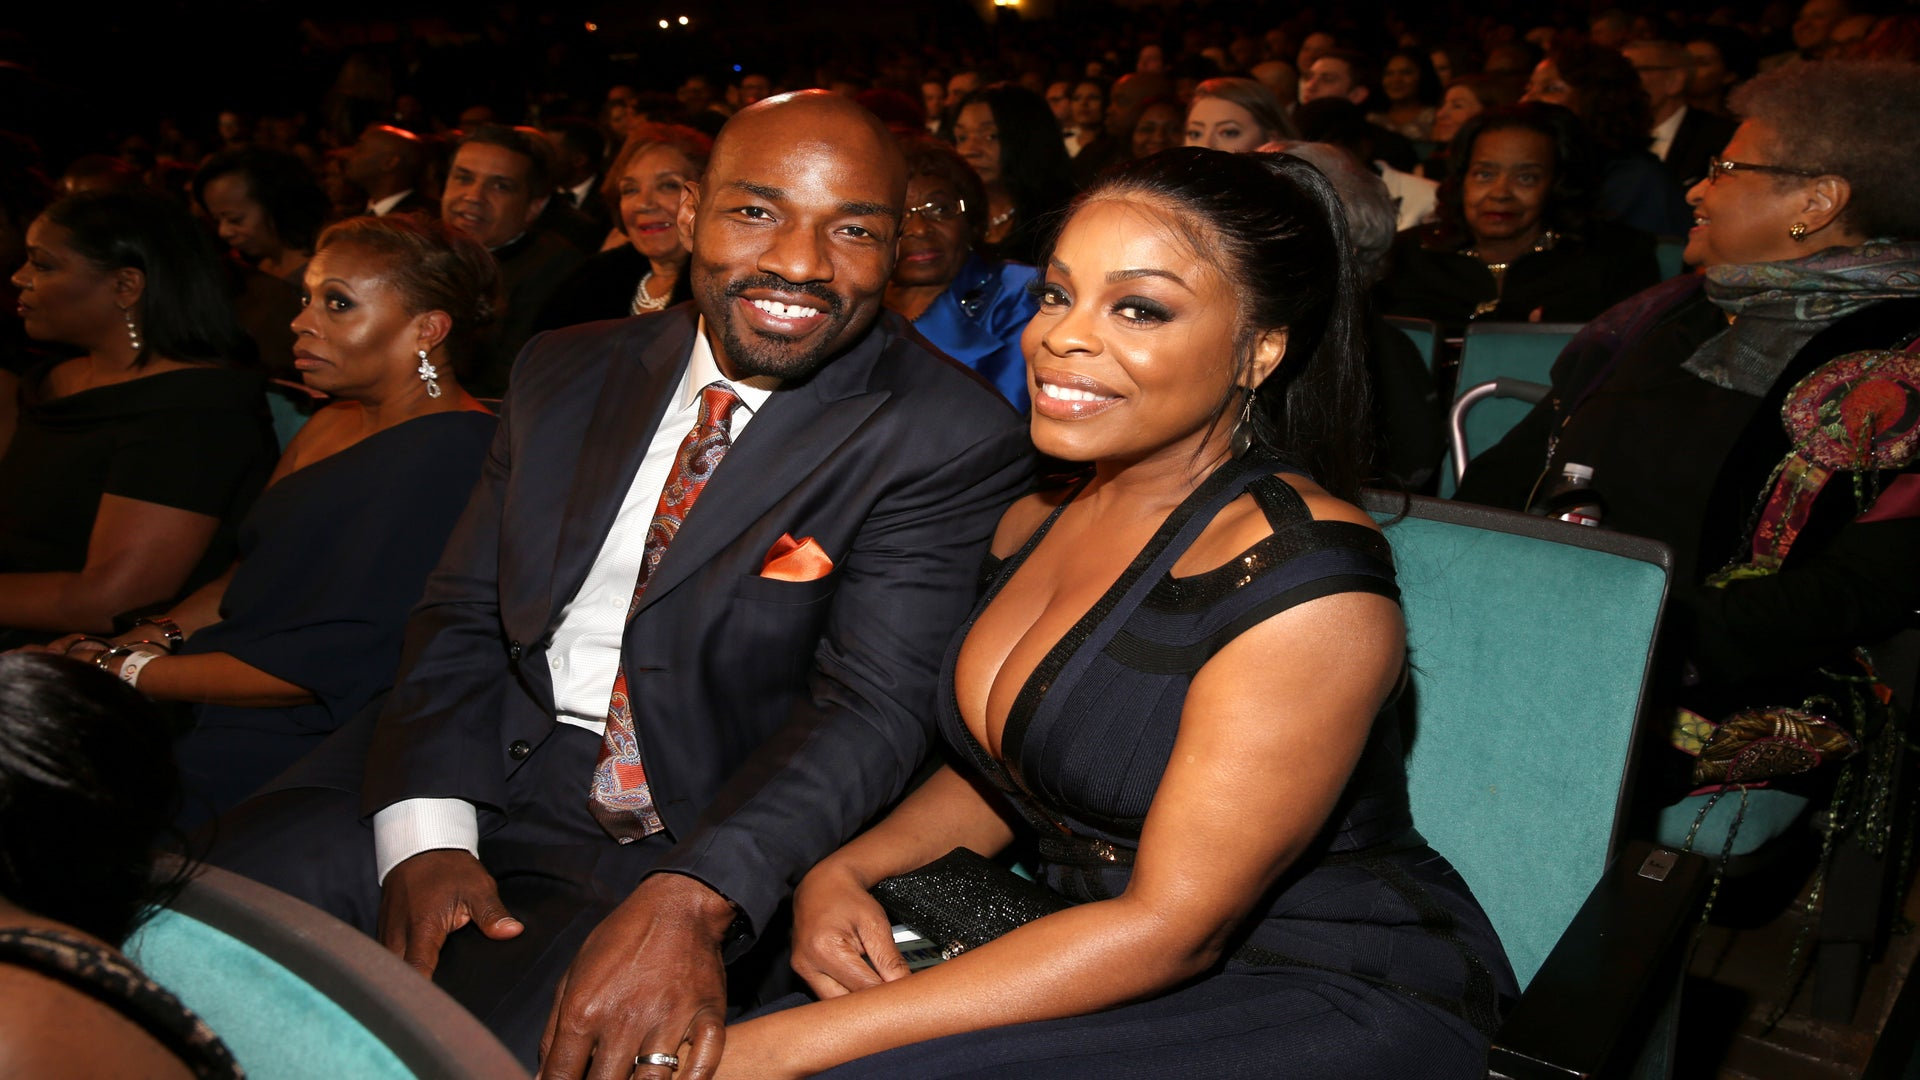 This Moment Of Black Love Realness Is Brought to You By Niecy Nash And Her Husband